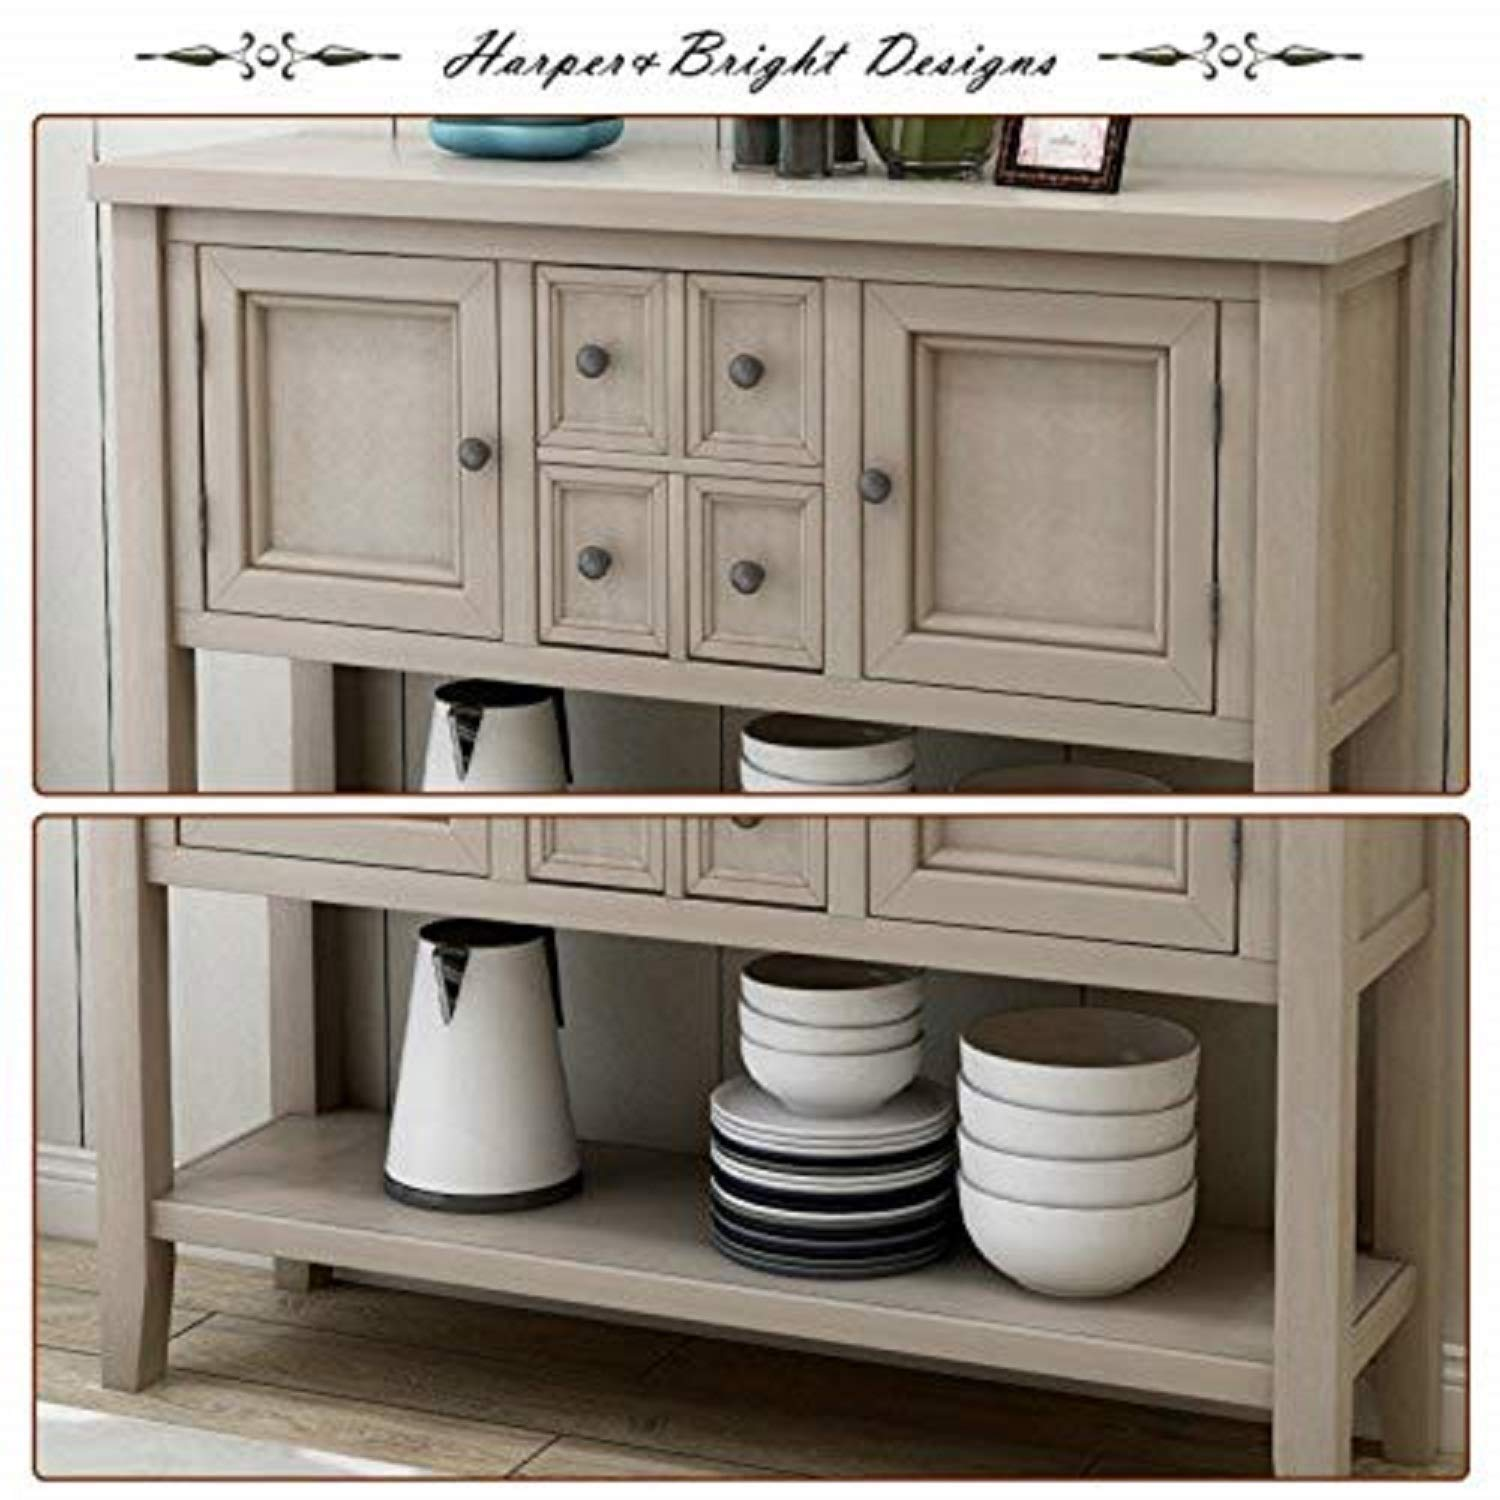 Harper Bright Designs Buffet Table Kitchen Storage Buffet and Sideboard Console Tables with Four Storage Drawers Two Cabinets and Bottom Antique Grey